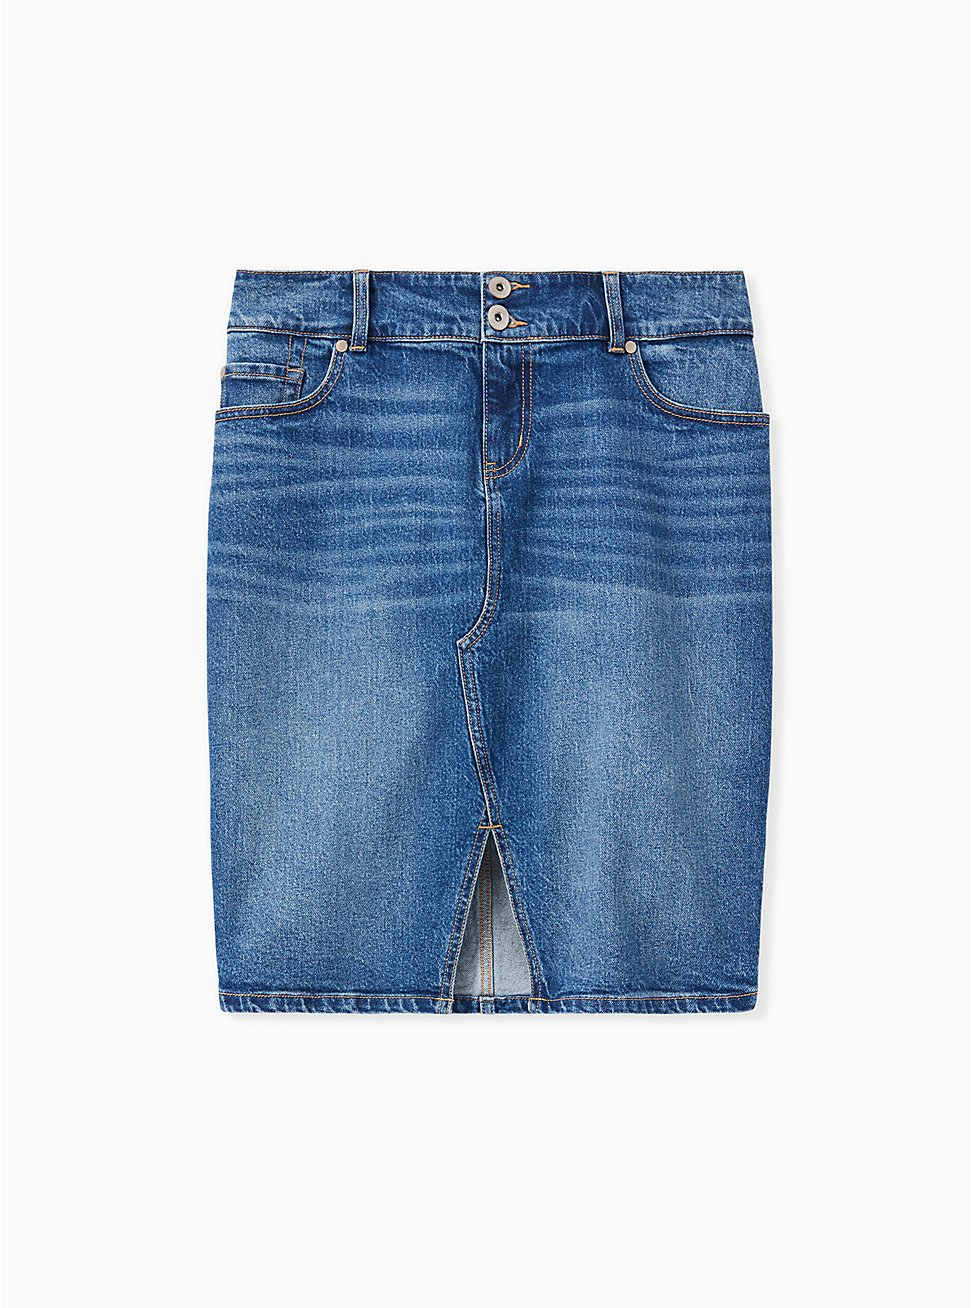 Denim Slit Front Pencil Skirt - Medium Wash , BLUE STAR, hi-res